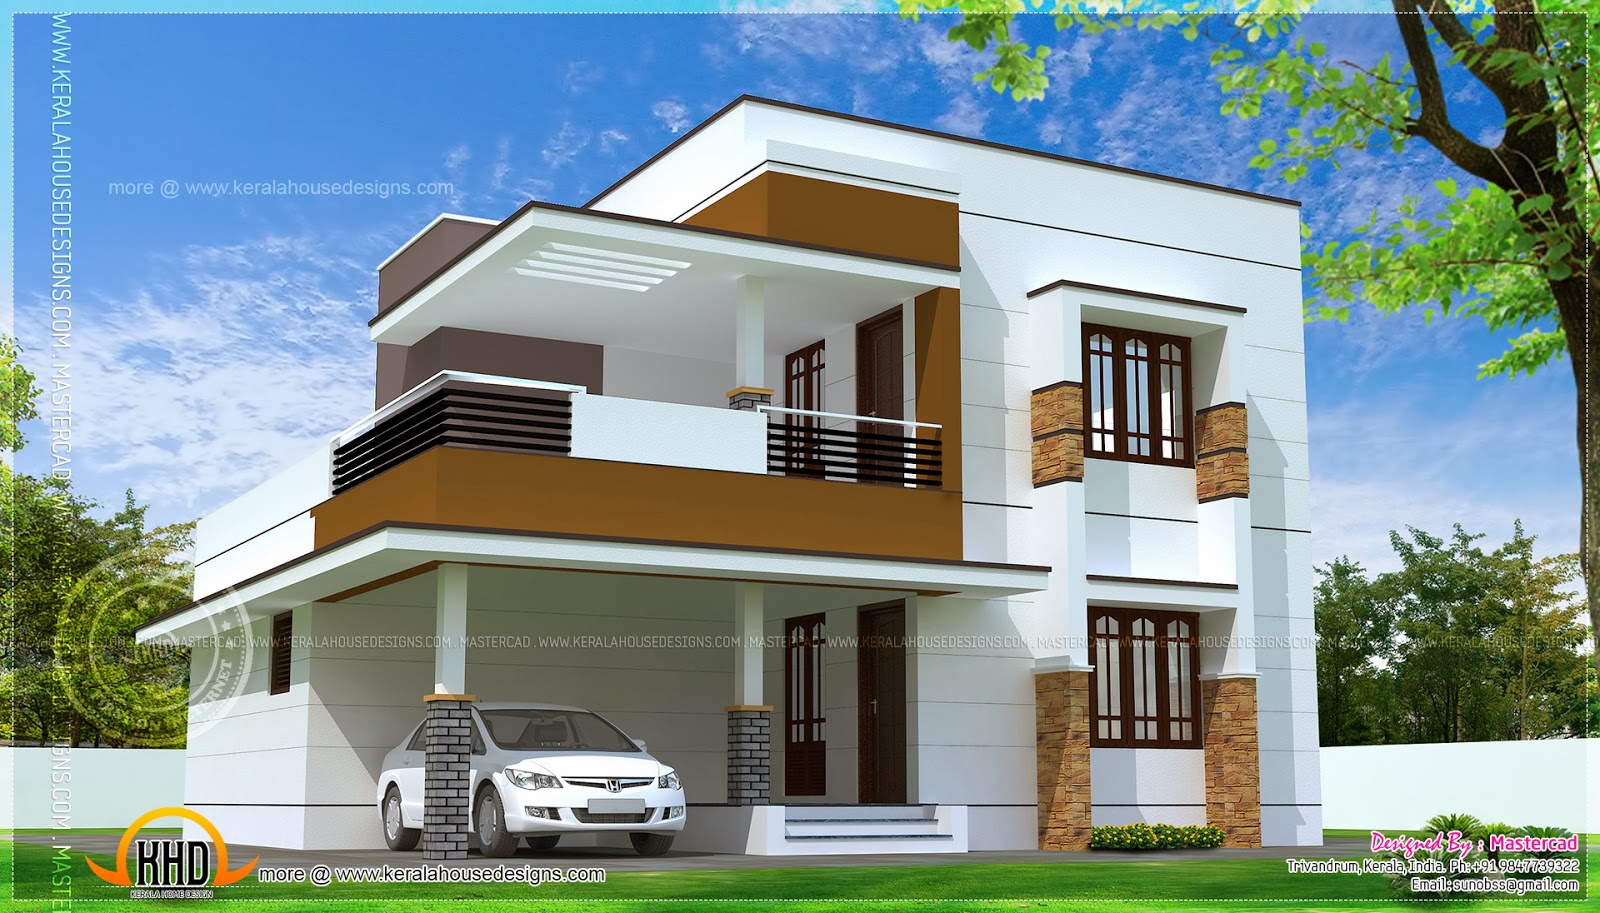 November 2013 kerala home design and floor plans for Best home designs 2015